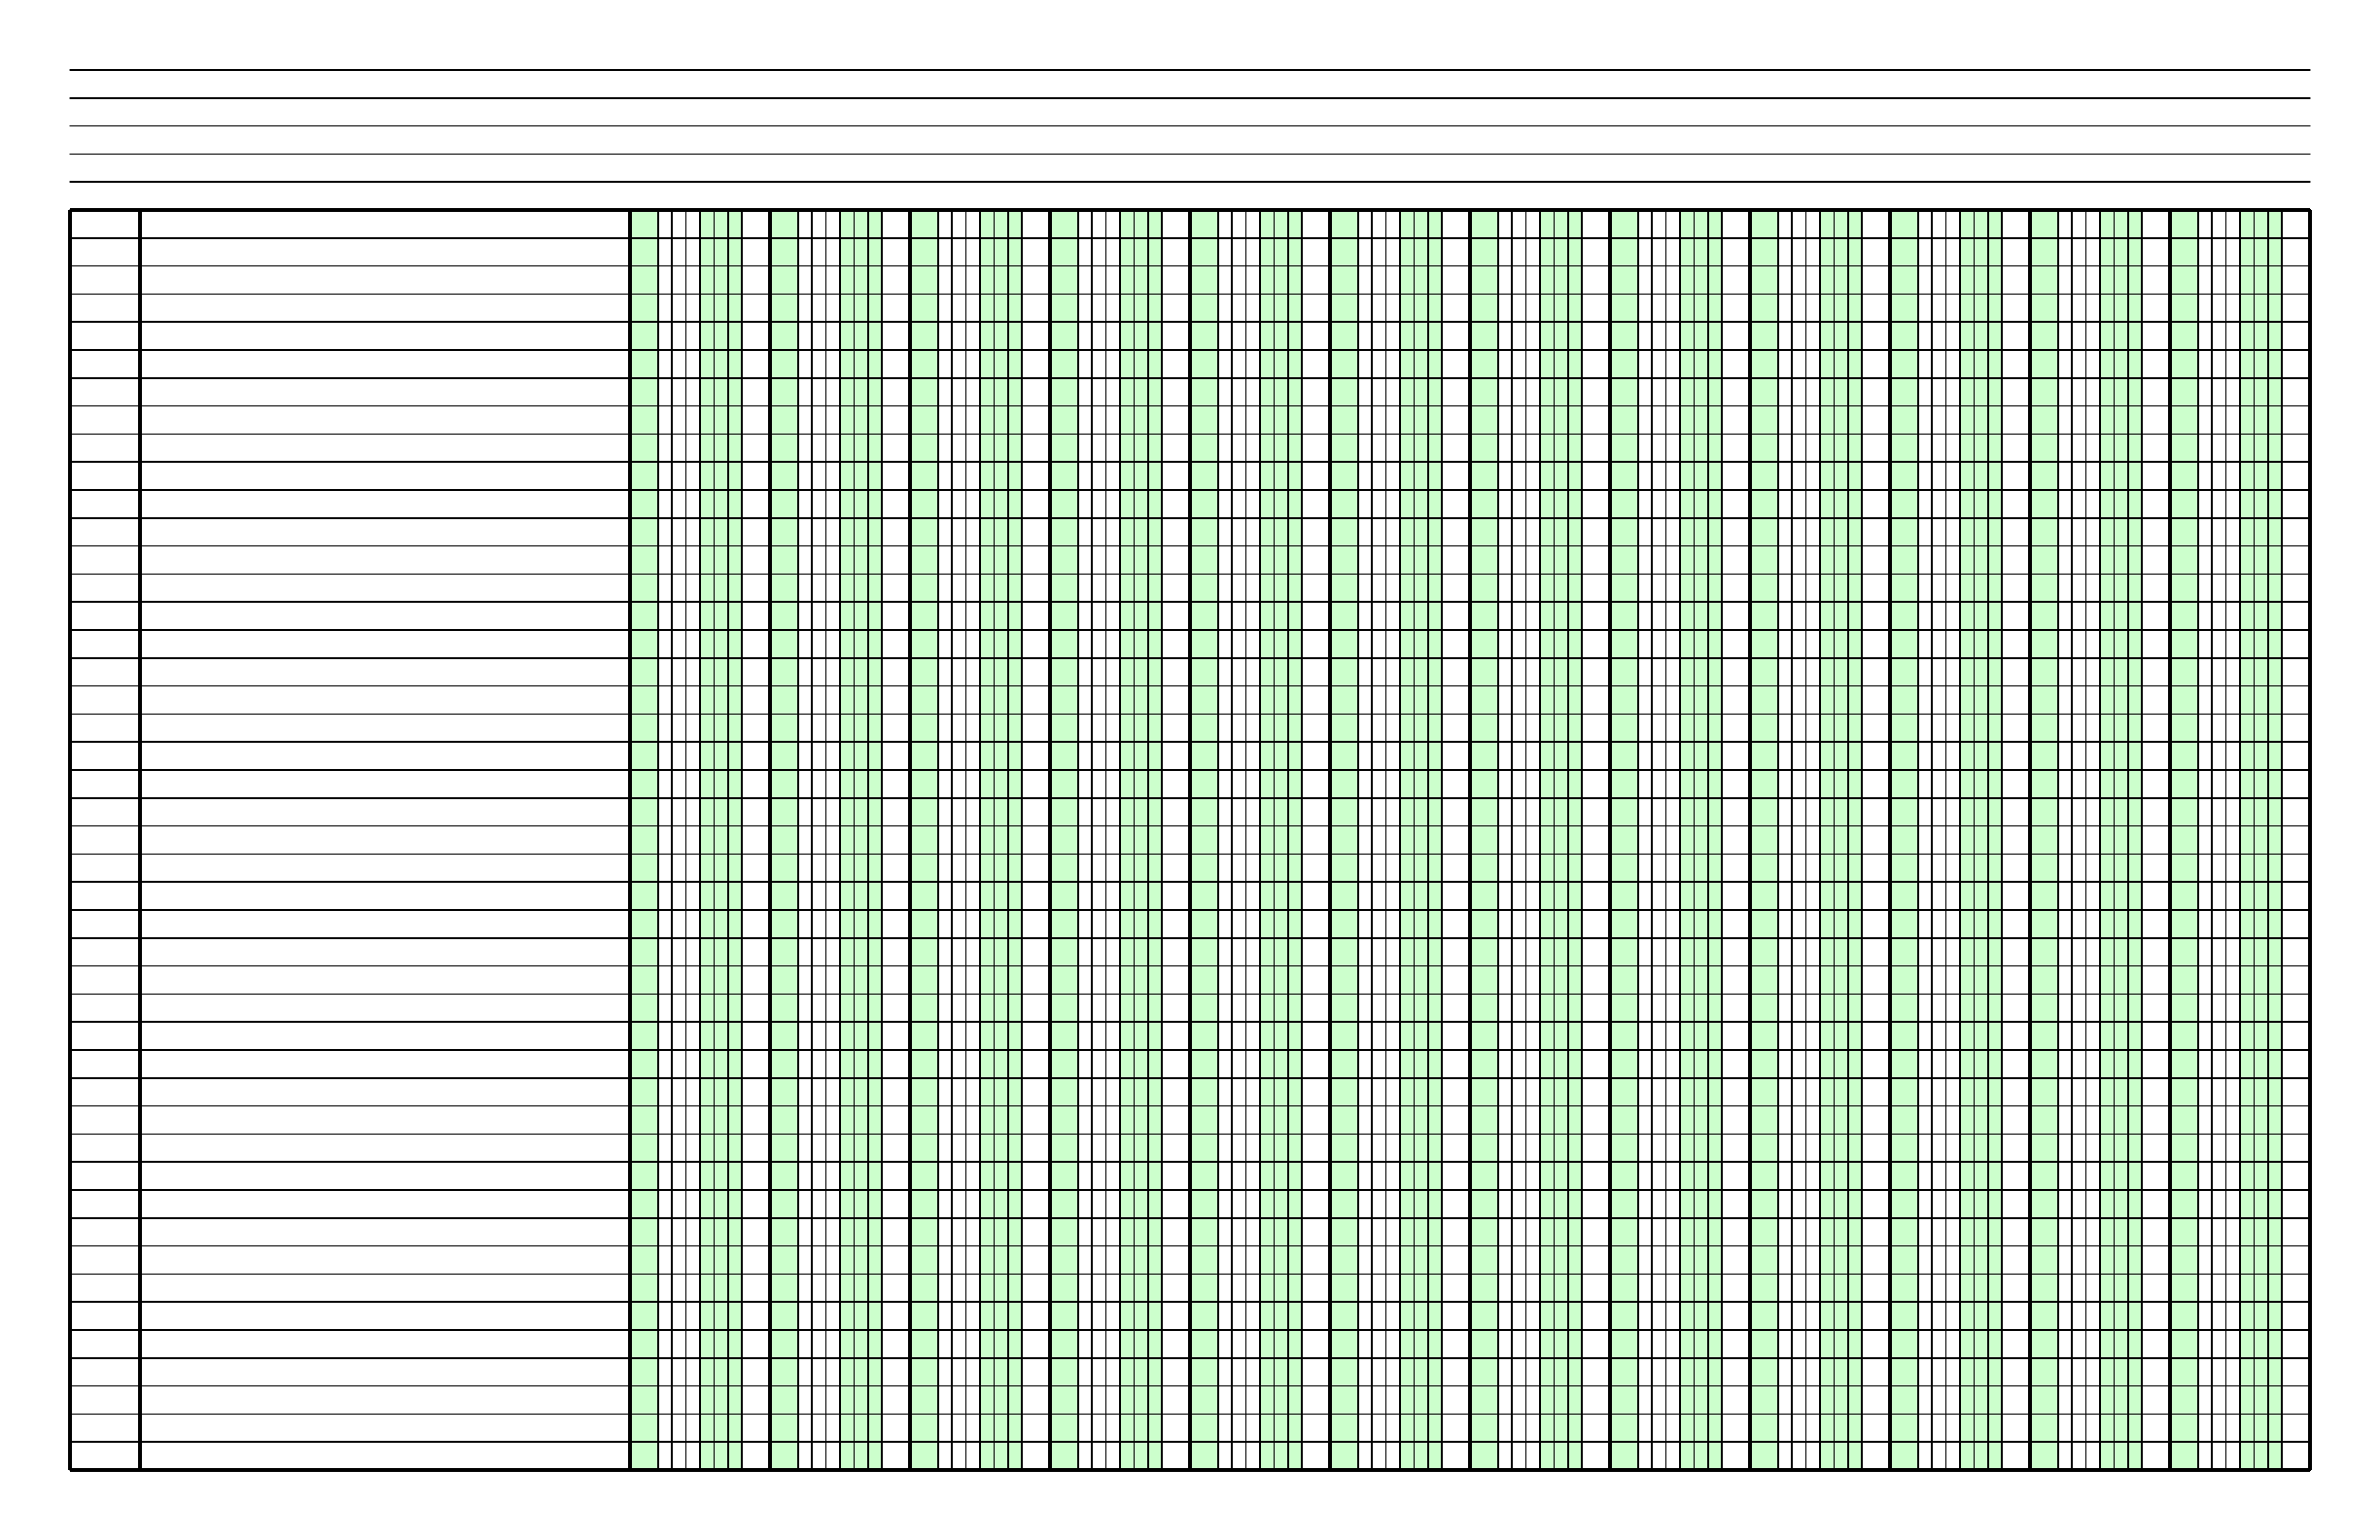 Columnar Paper With Twelve Columns On Ledger Sized Paper